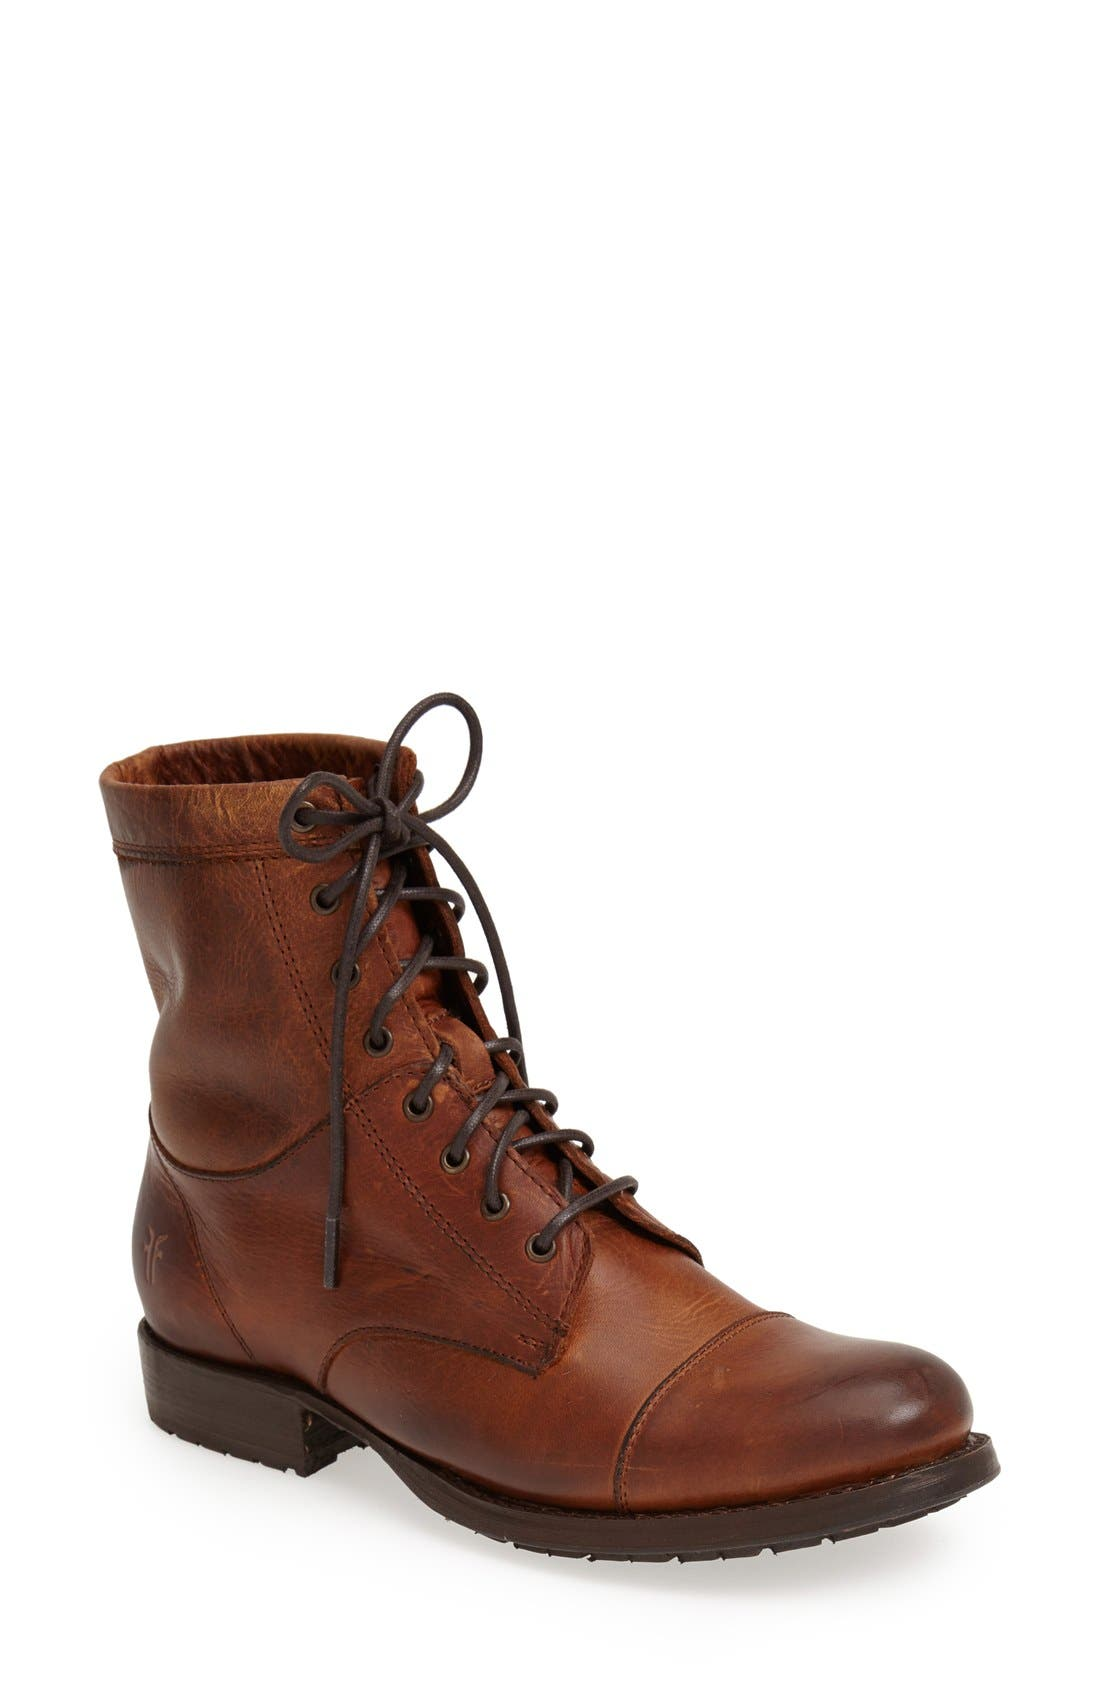 Main Image - Frye 'Erin' Cap Toe Leather Lace-Up Boot (Women)